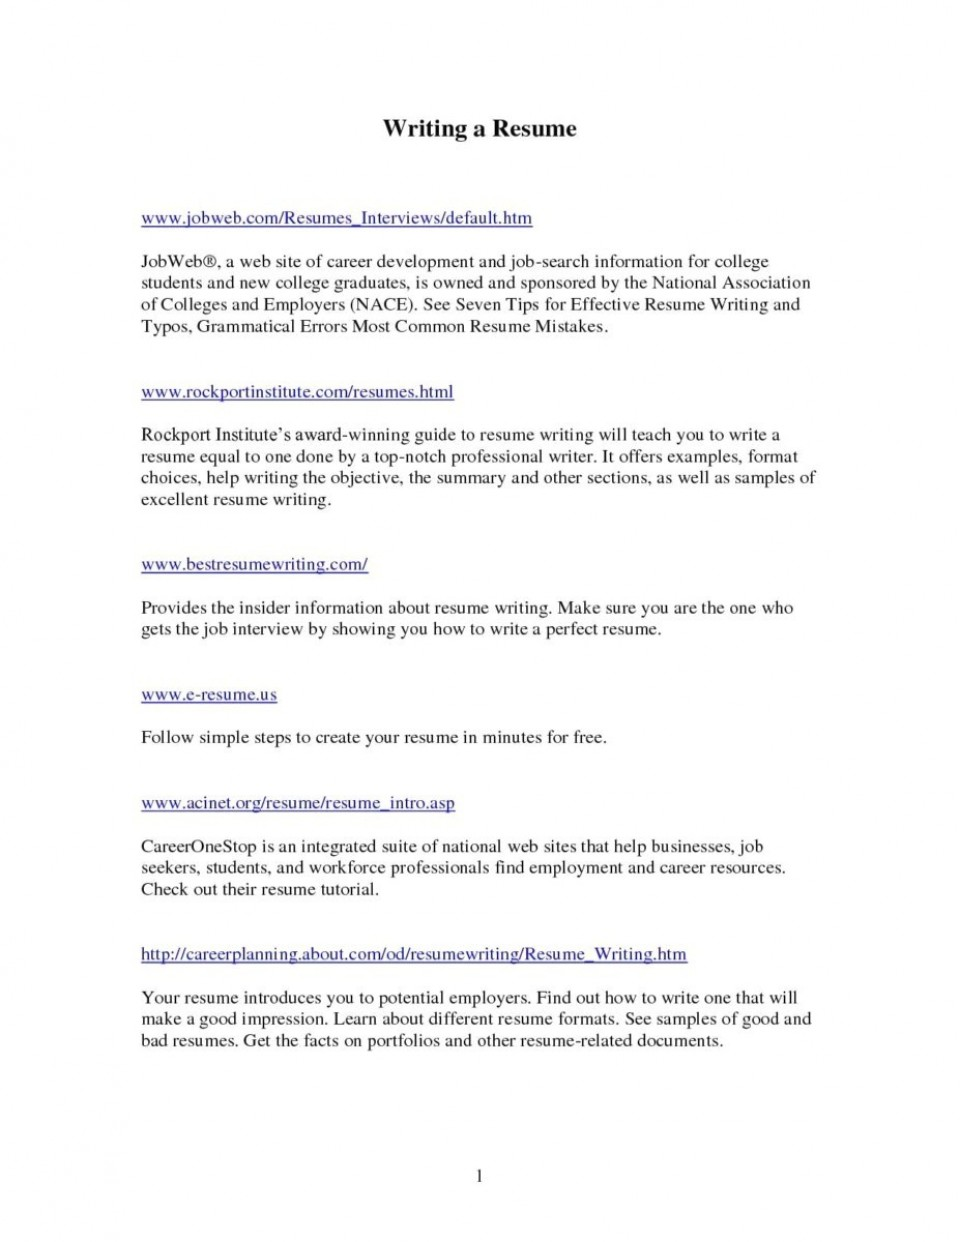 010 How To Write Research Paper Outline Apa Resume Writing Service Reviews Format Best Writers Inspirational Help Professional Of Free Beautiful A Style 960